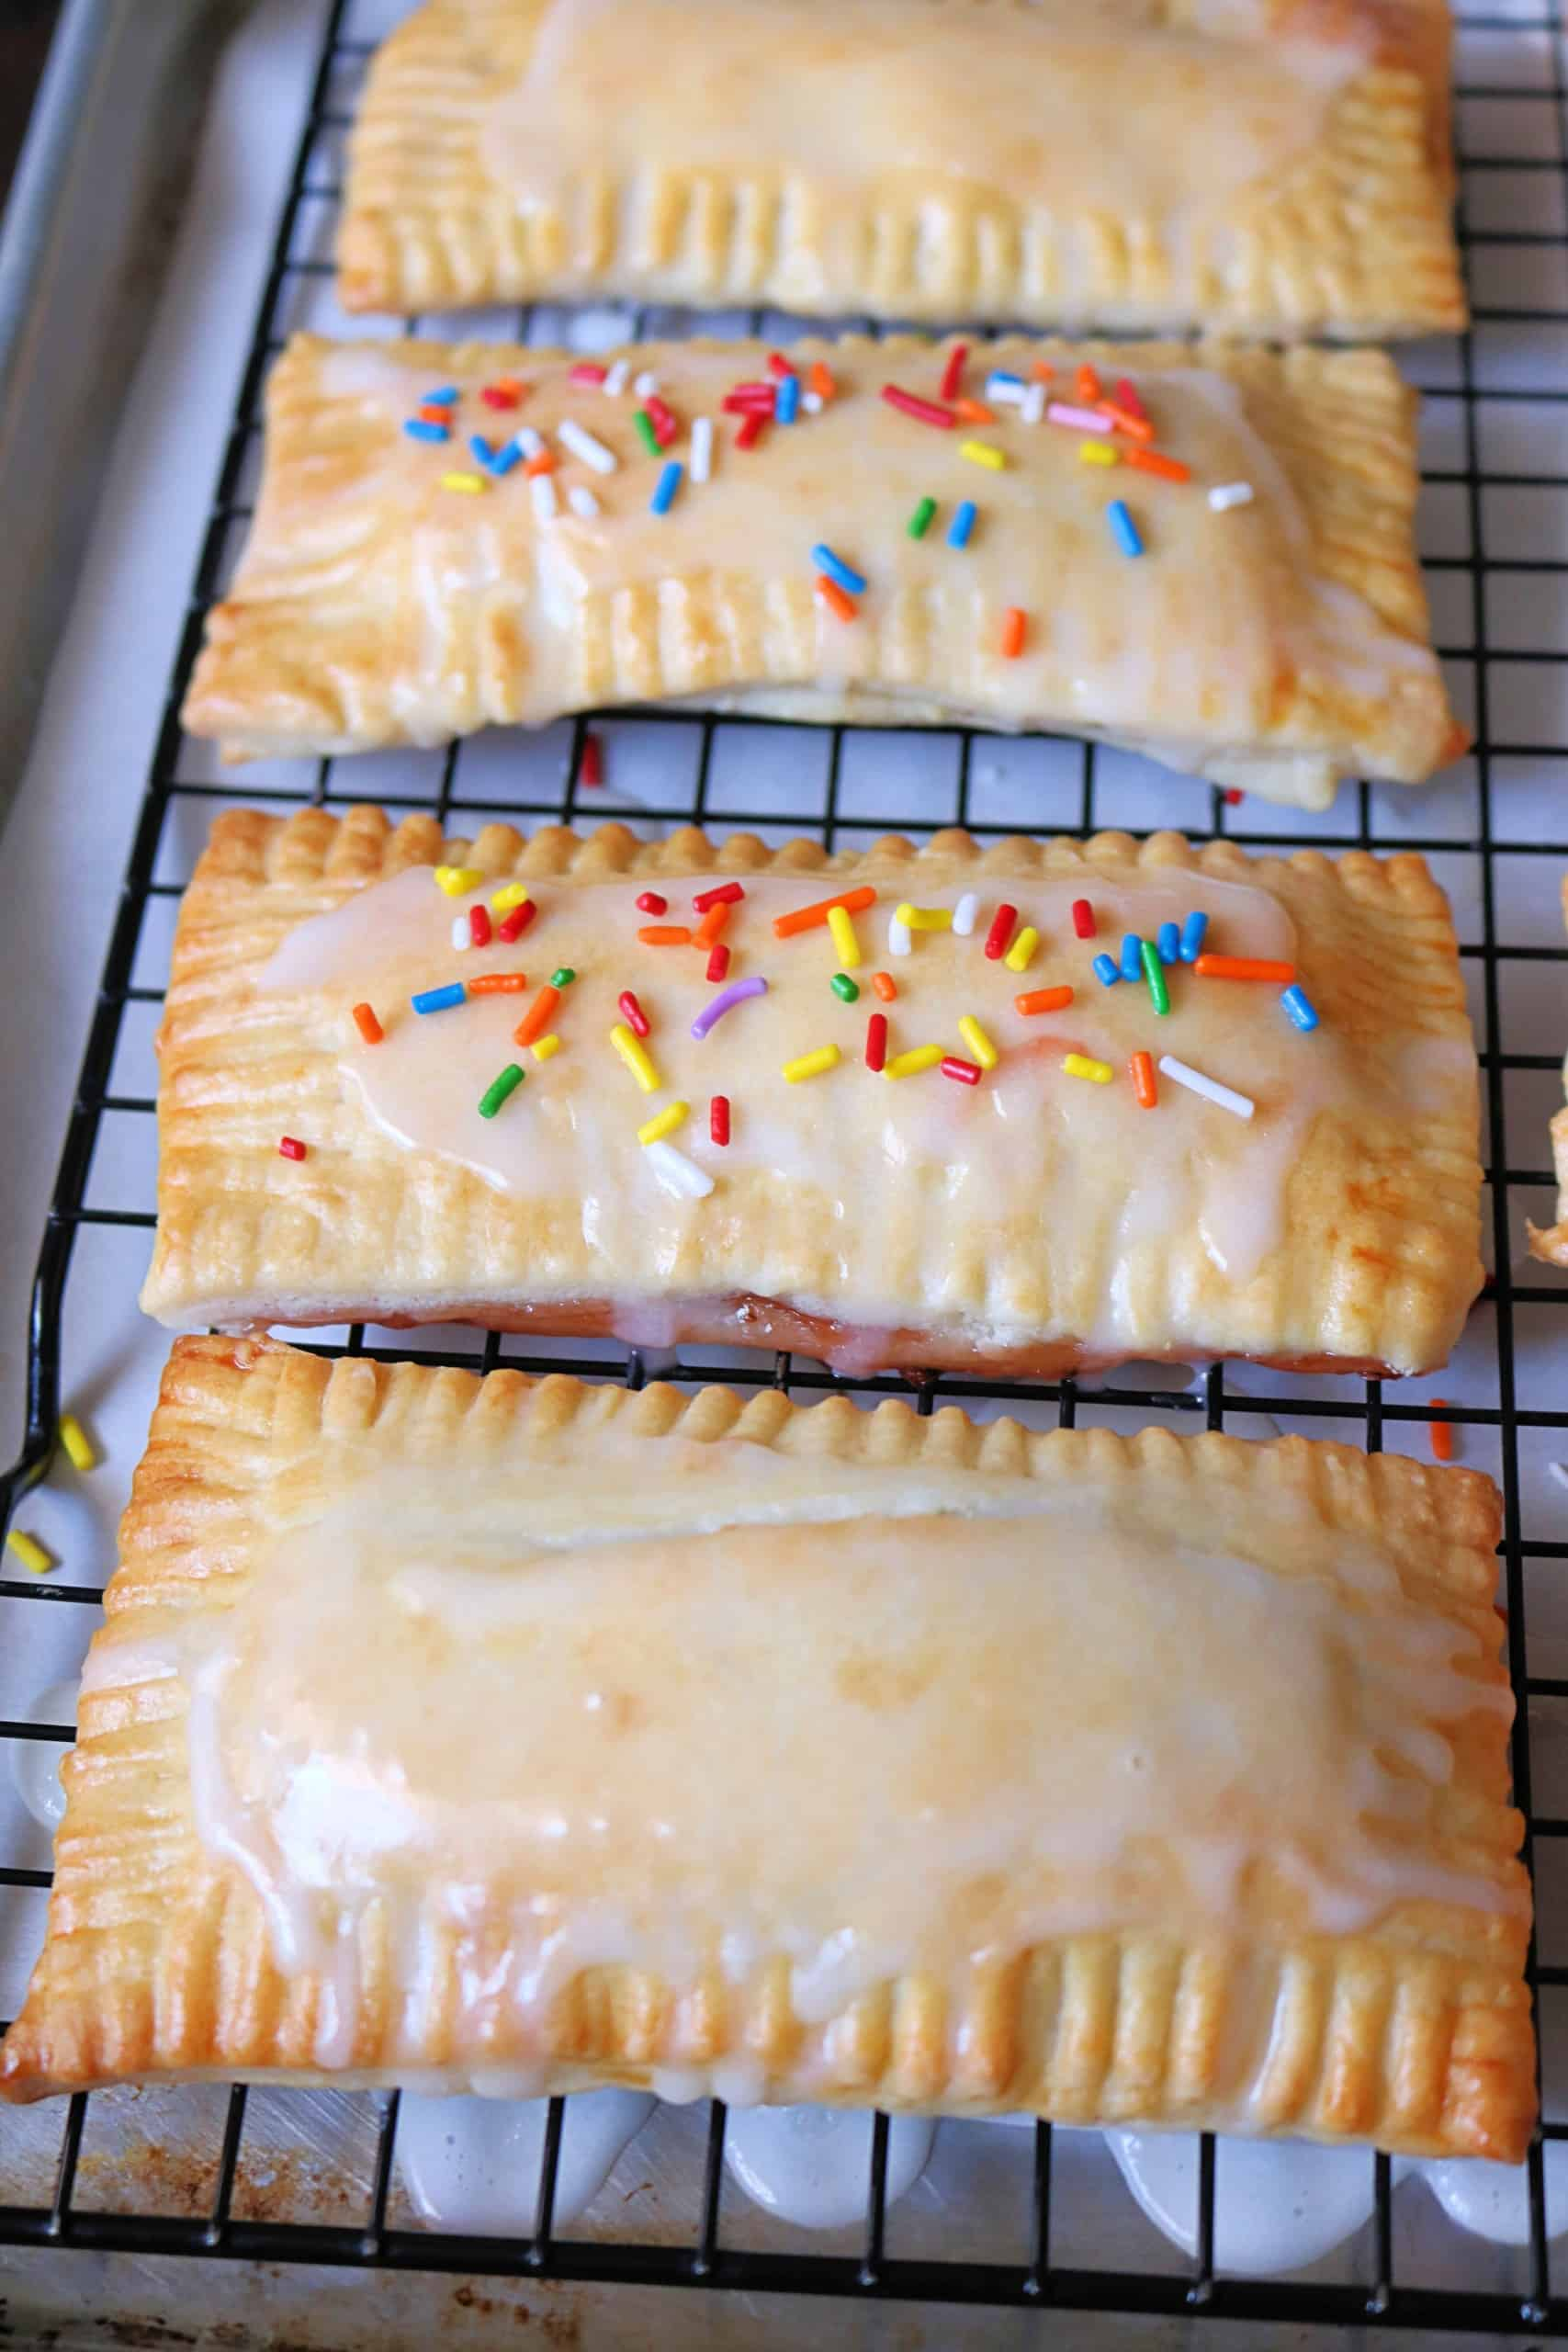 Learn how to make these easy and delicious homemade pop tarts in 3 flavors including Strawberry, Blueberry, and Brown Sugar Cinnamon. These pop tarts are made from scratch with an easy pie crust dough, filled with a delicious filling, and topped with a vanilla sugar icing and sprinkles. #poptarts #pastry #breakfast #dessert